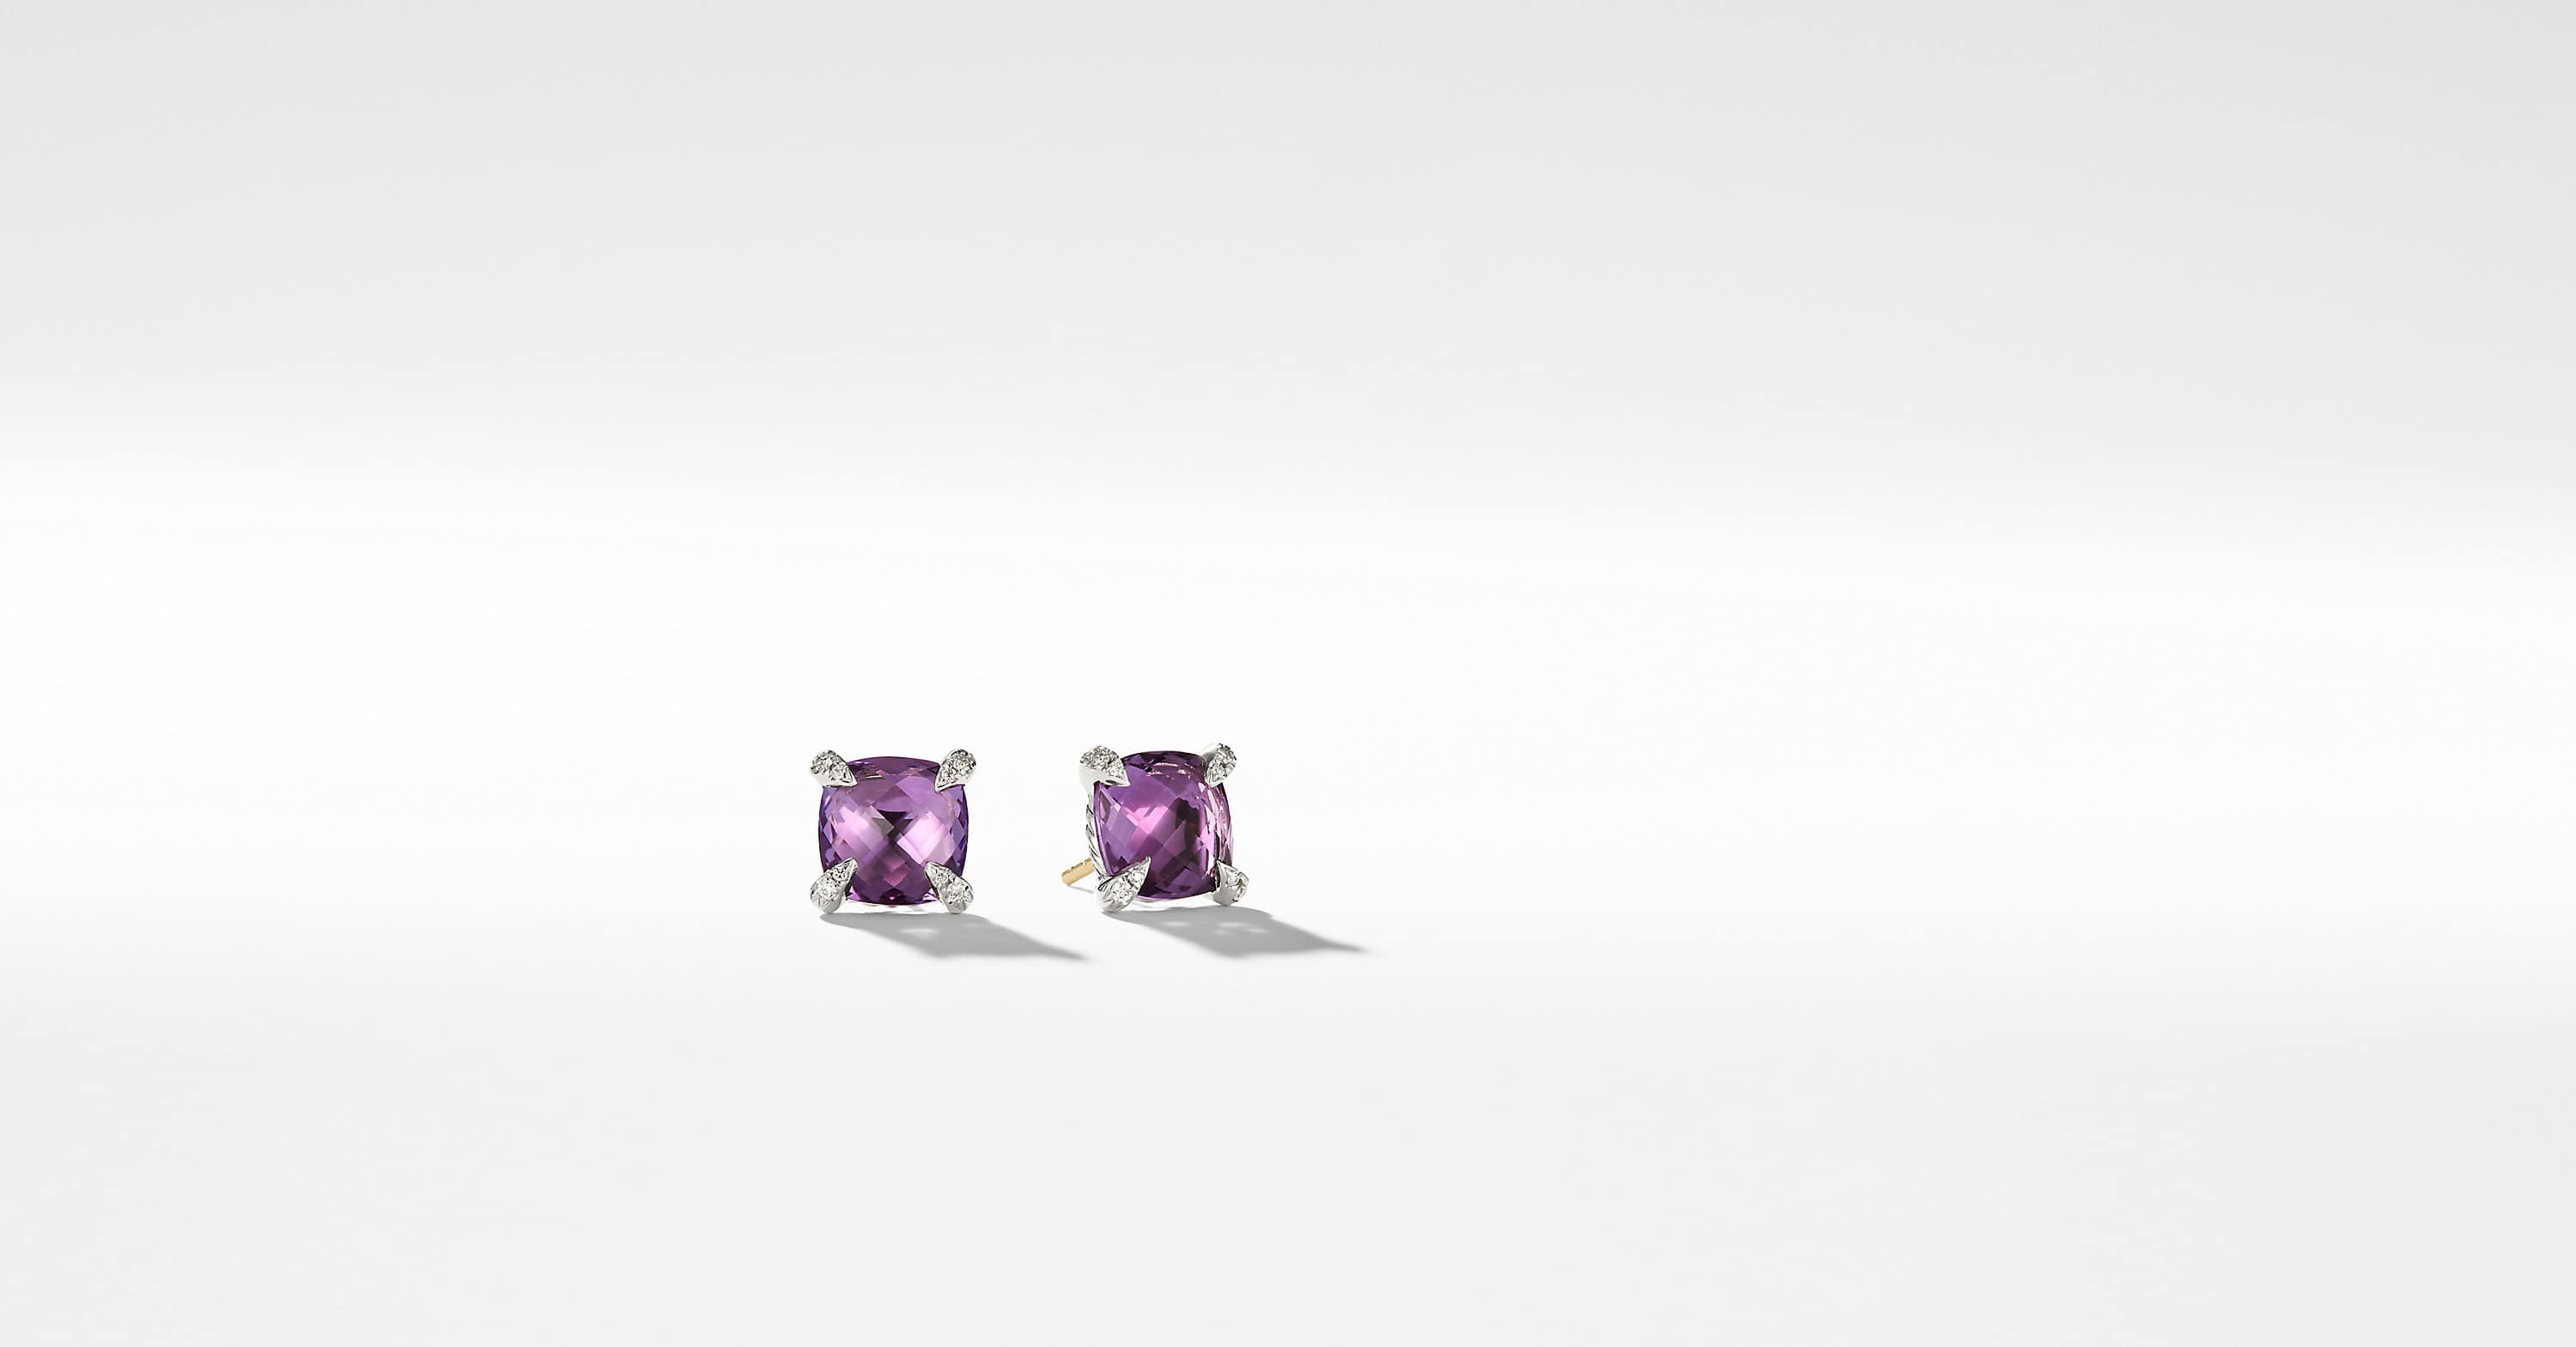 Chatelaine Earrings with Diamonds, 9mm